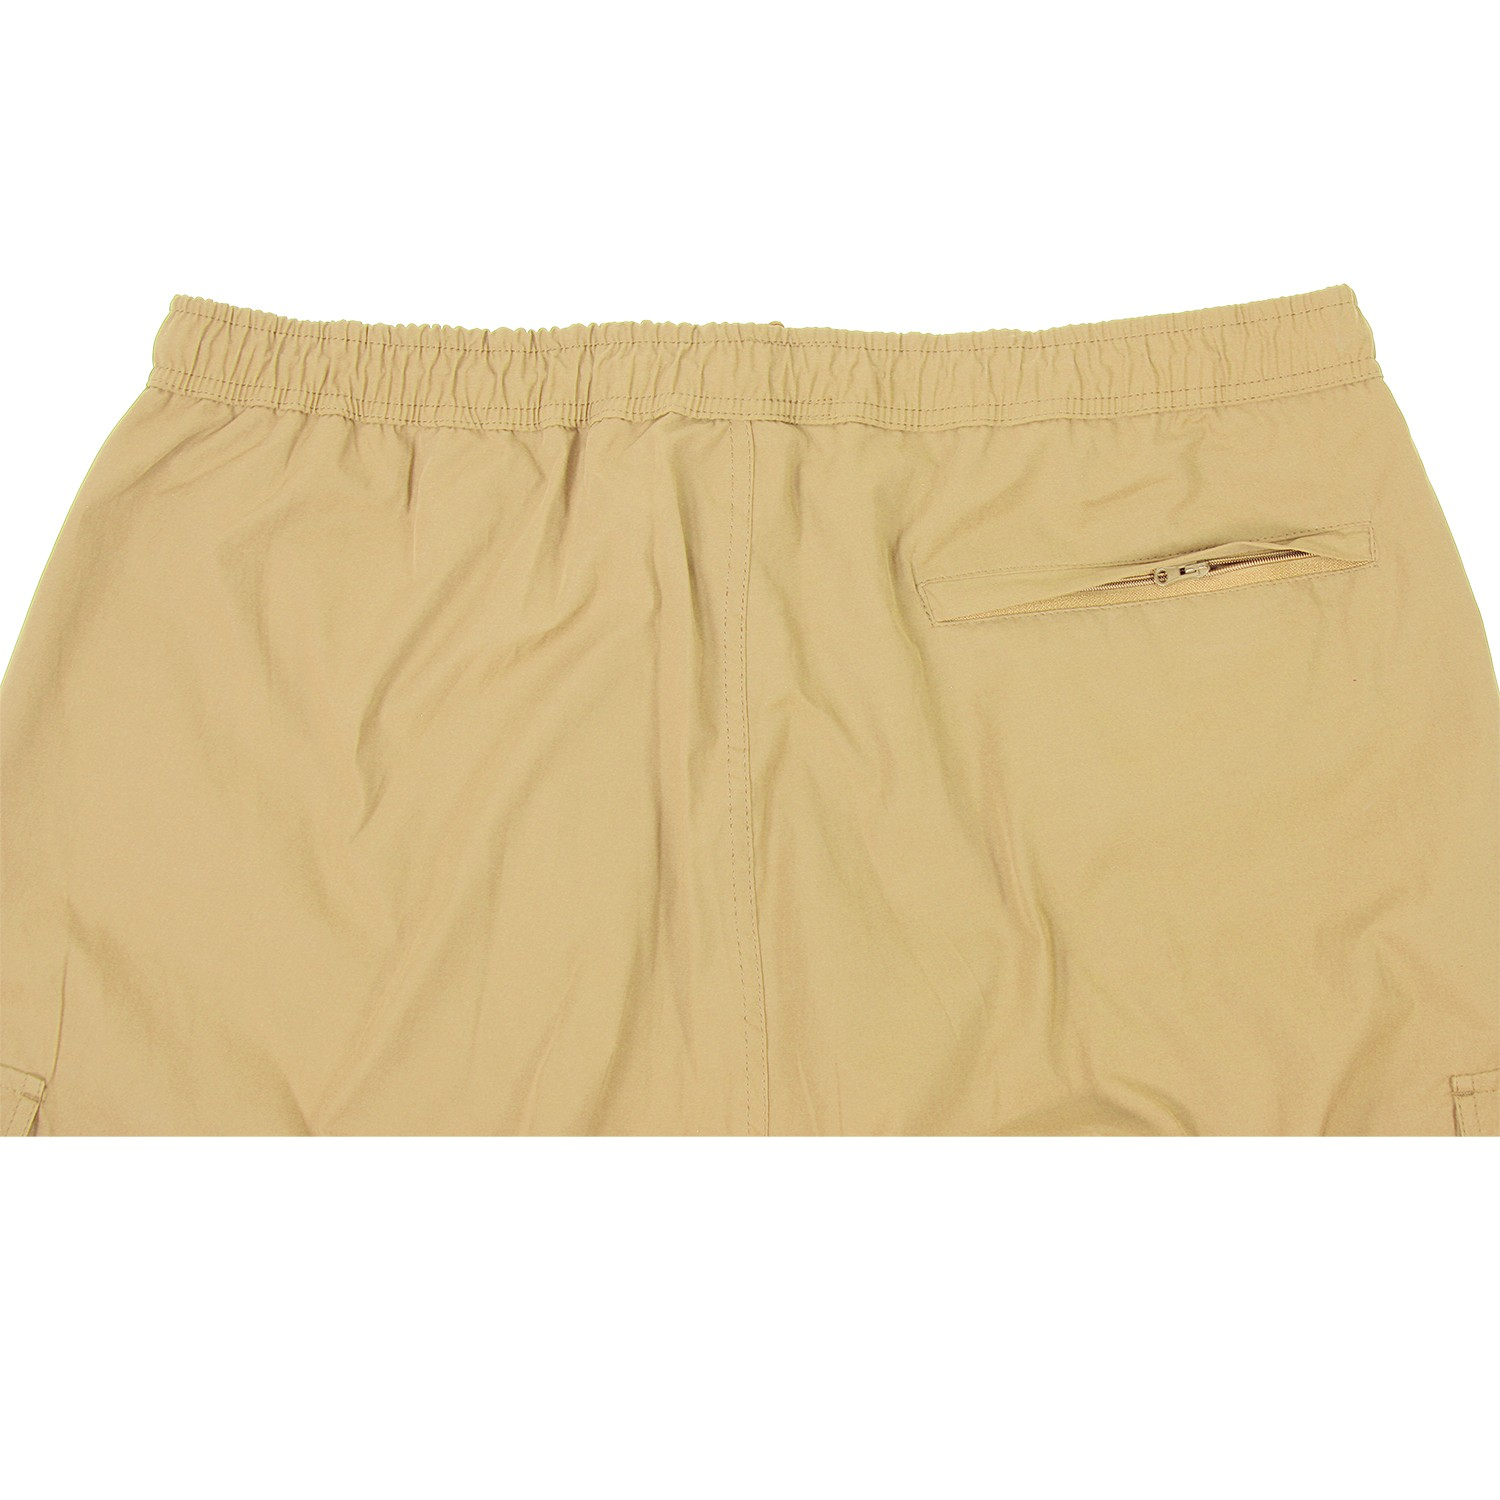 Detail Image to Zip-off-cargo-bermuda sand-coloured by Abraxas in large sizes up to 10XL